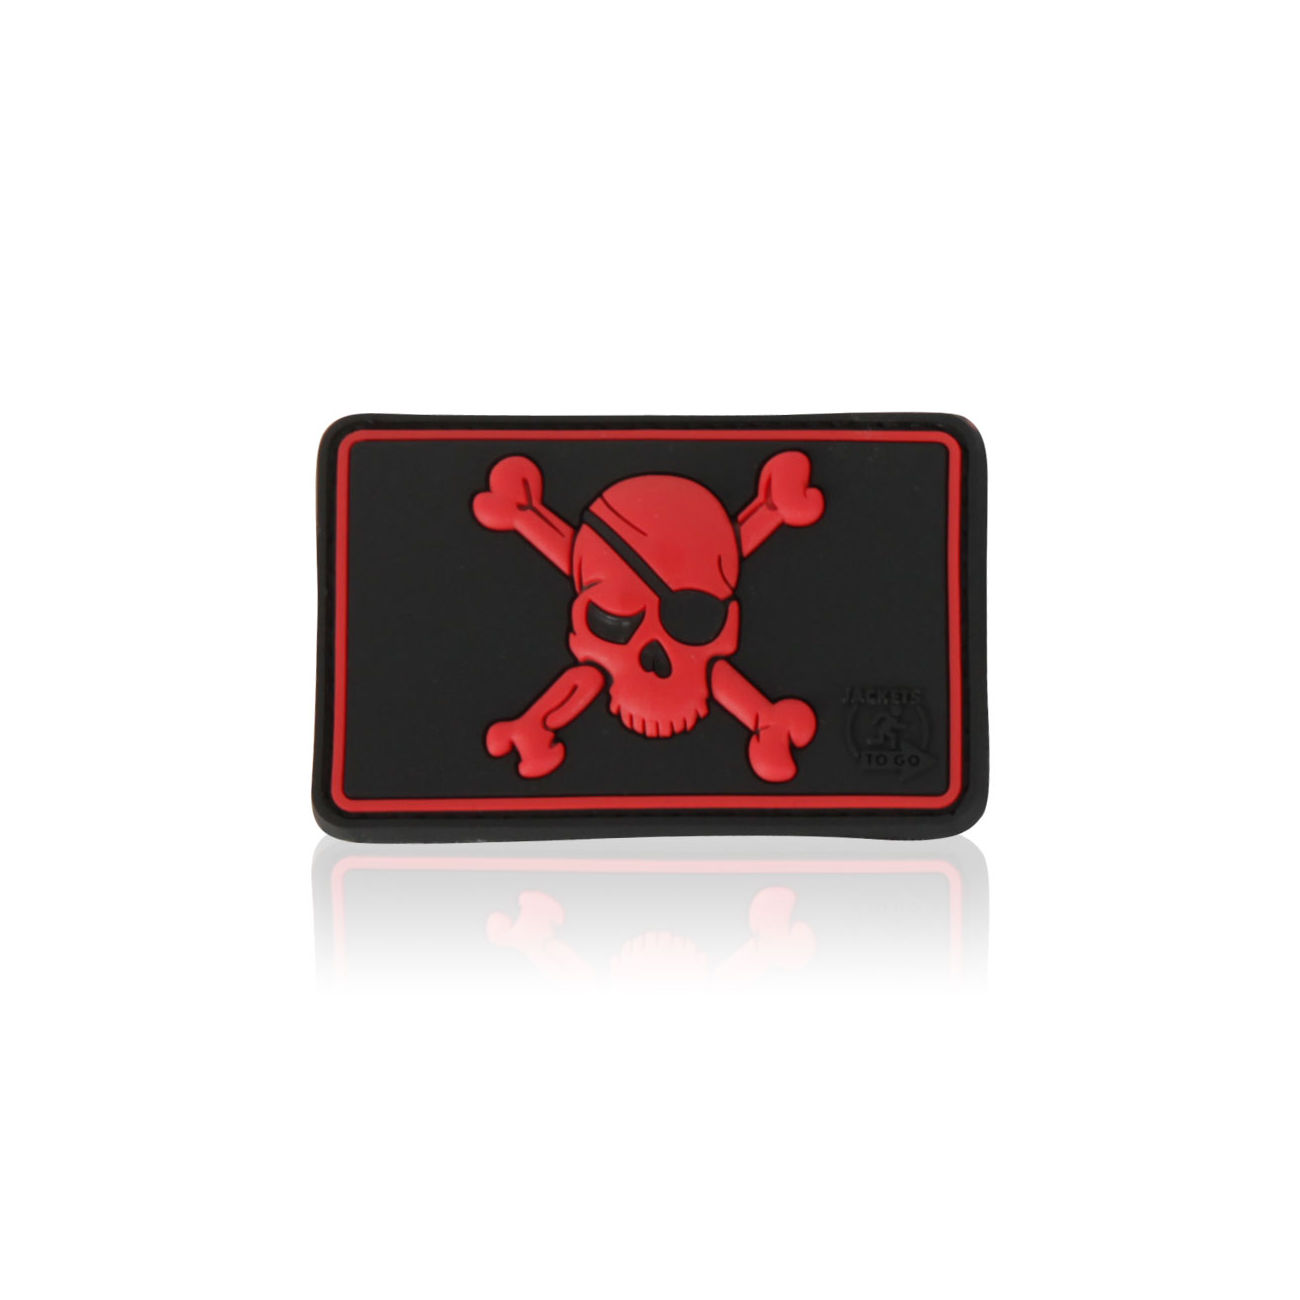 3D Rubber Patch Pirate Skull blackmedic 0